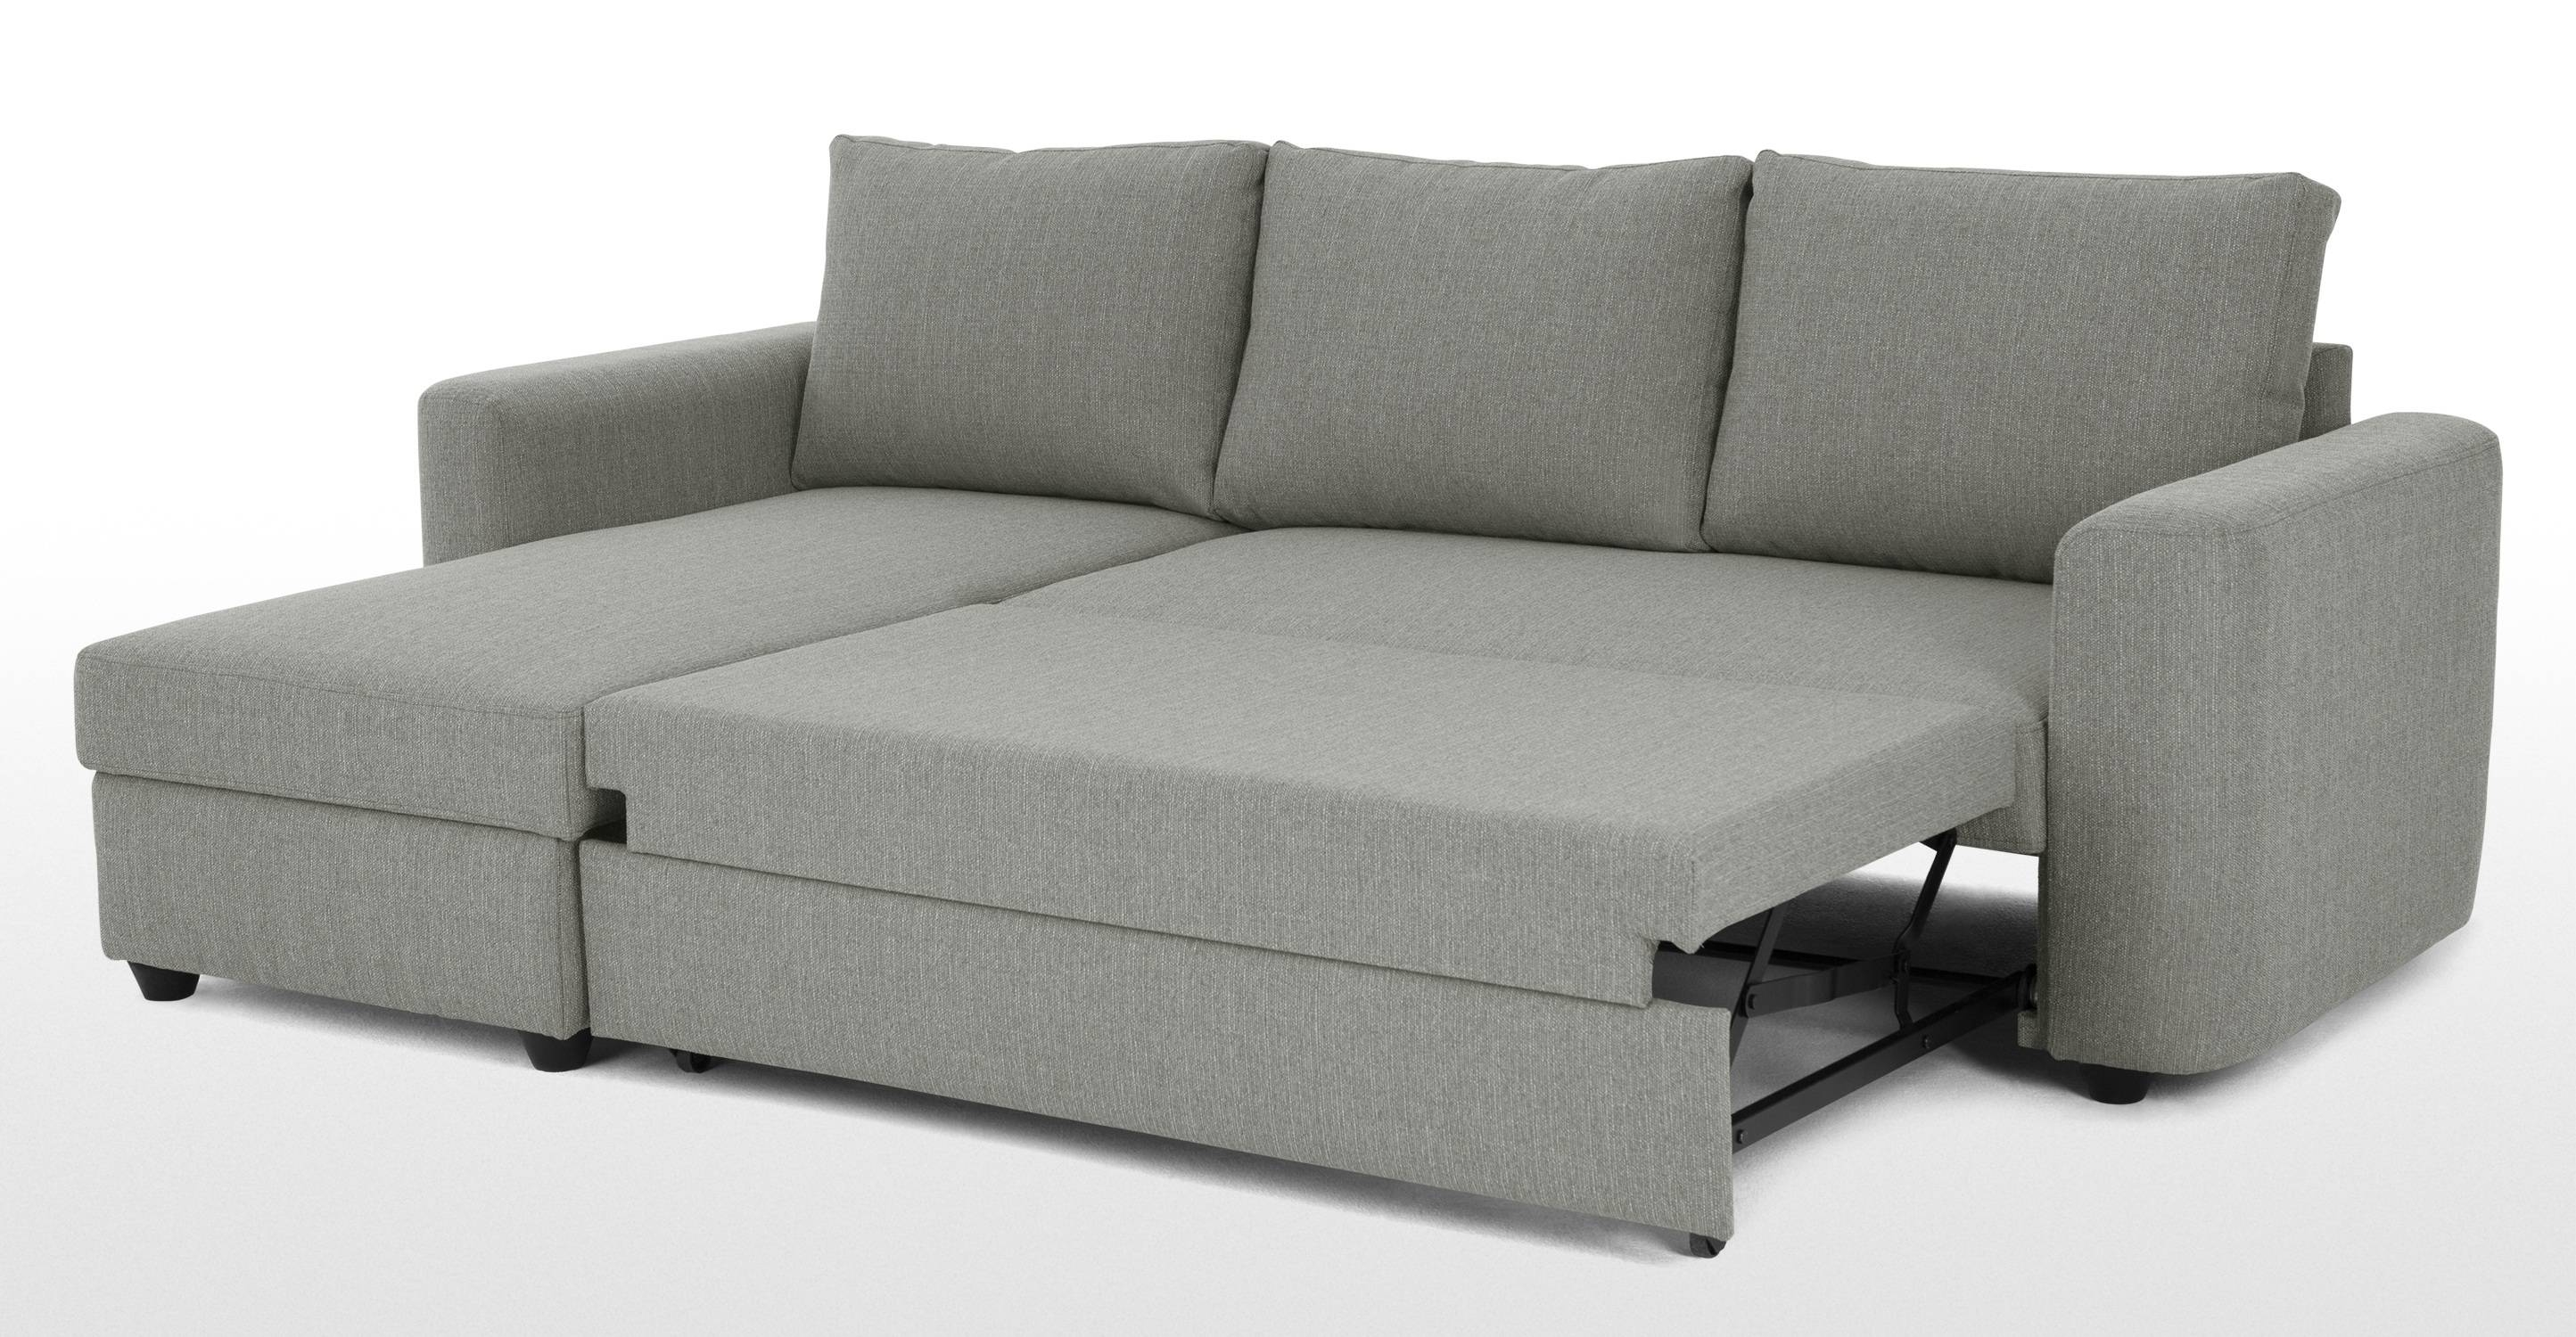 Aidian Corner Storage Sofa Bed, Silver Grey | Made inside Sofa Chairs for Bedroom (Image 2 of 15)